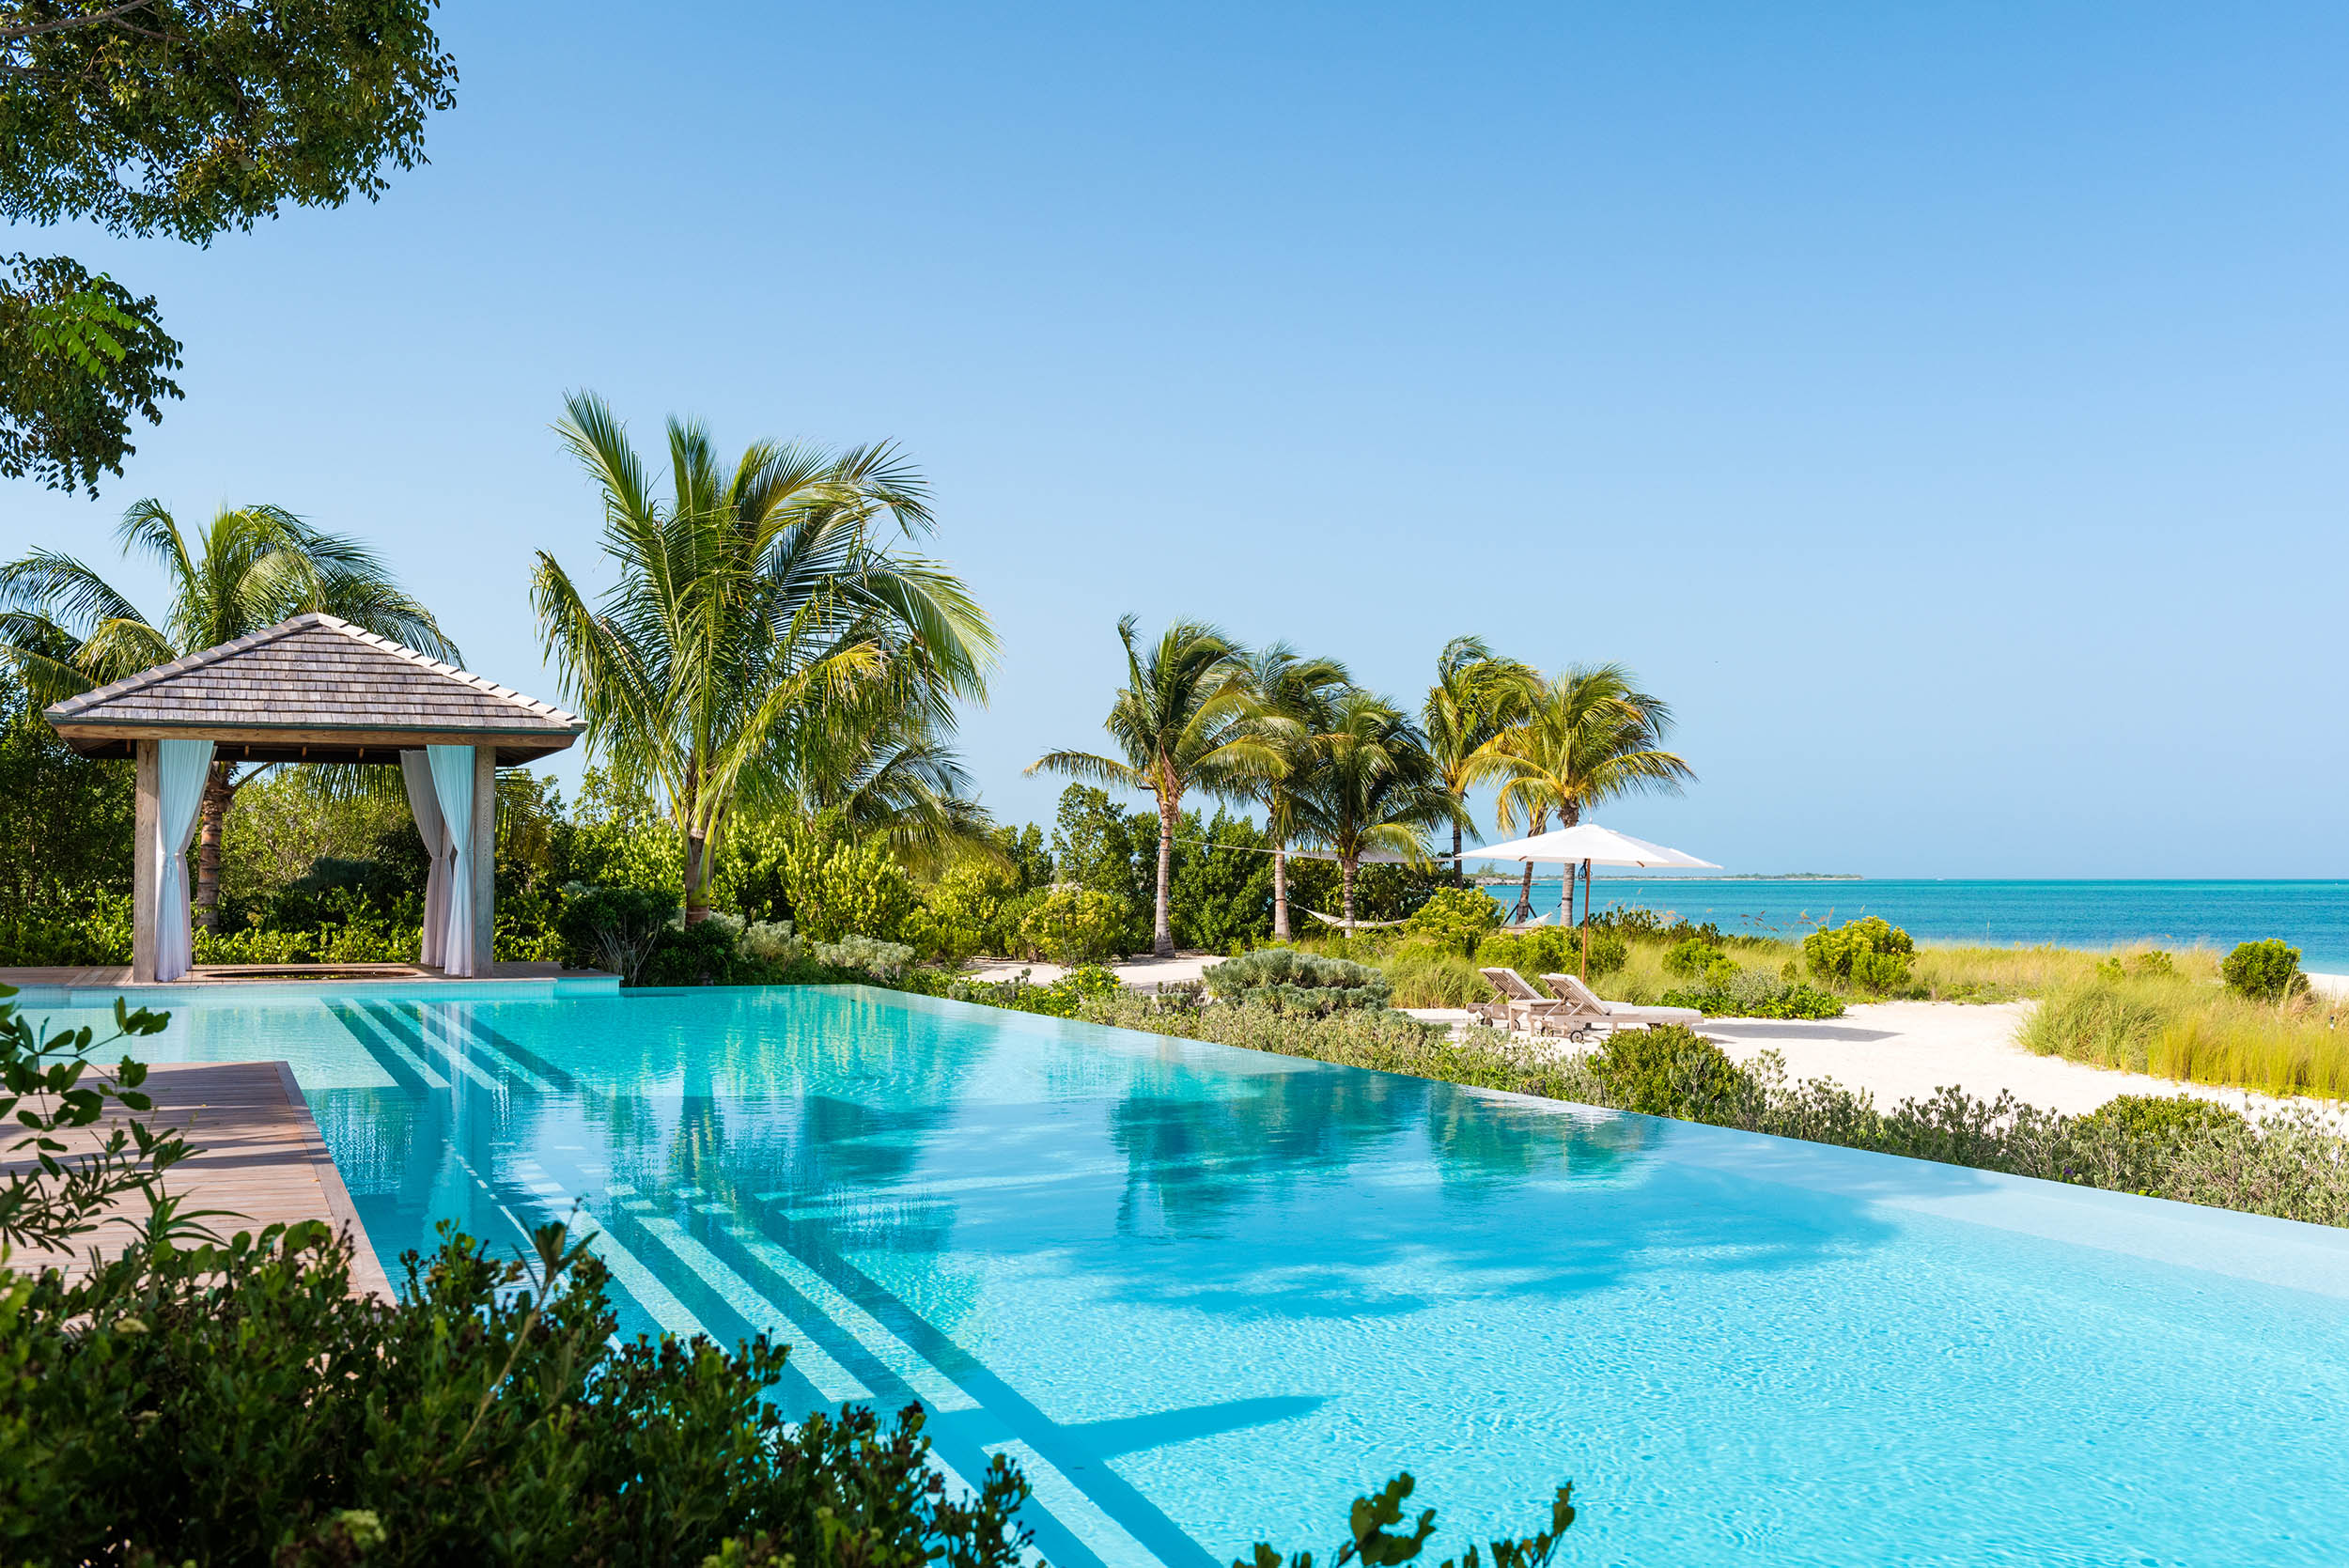 Serenity - view of the pool and cabana